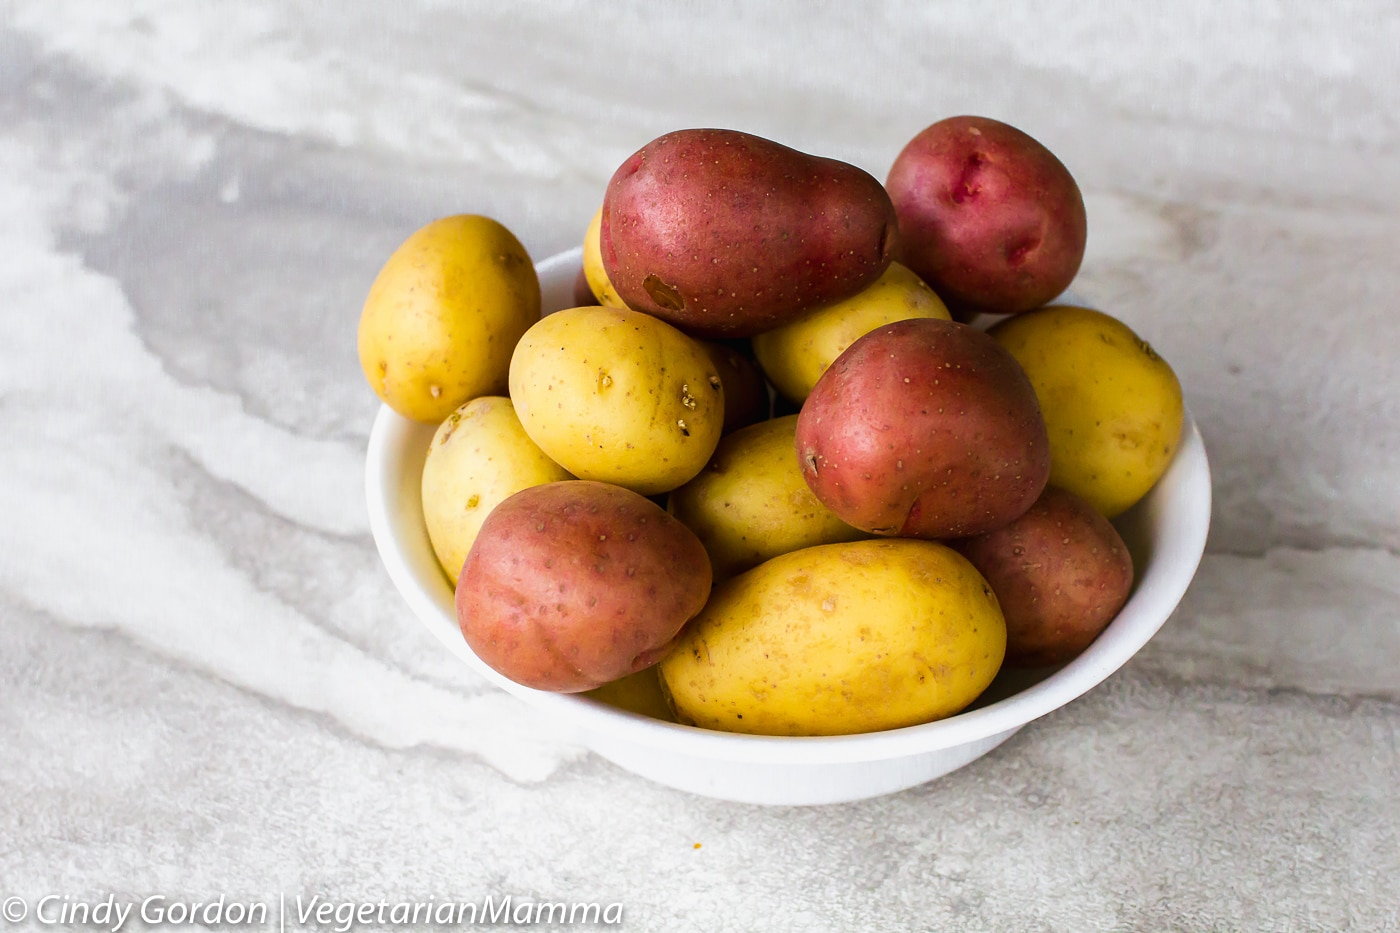 Air Fryer Roasted Potatoes - potatoes in a bowl